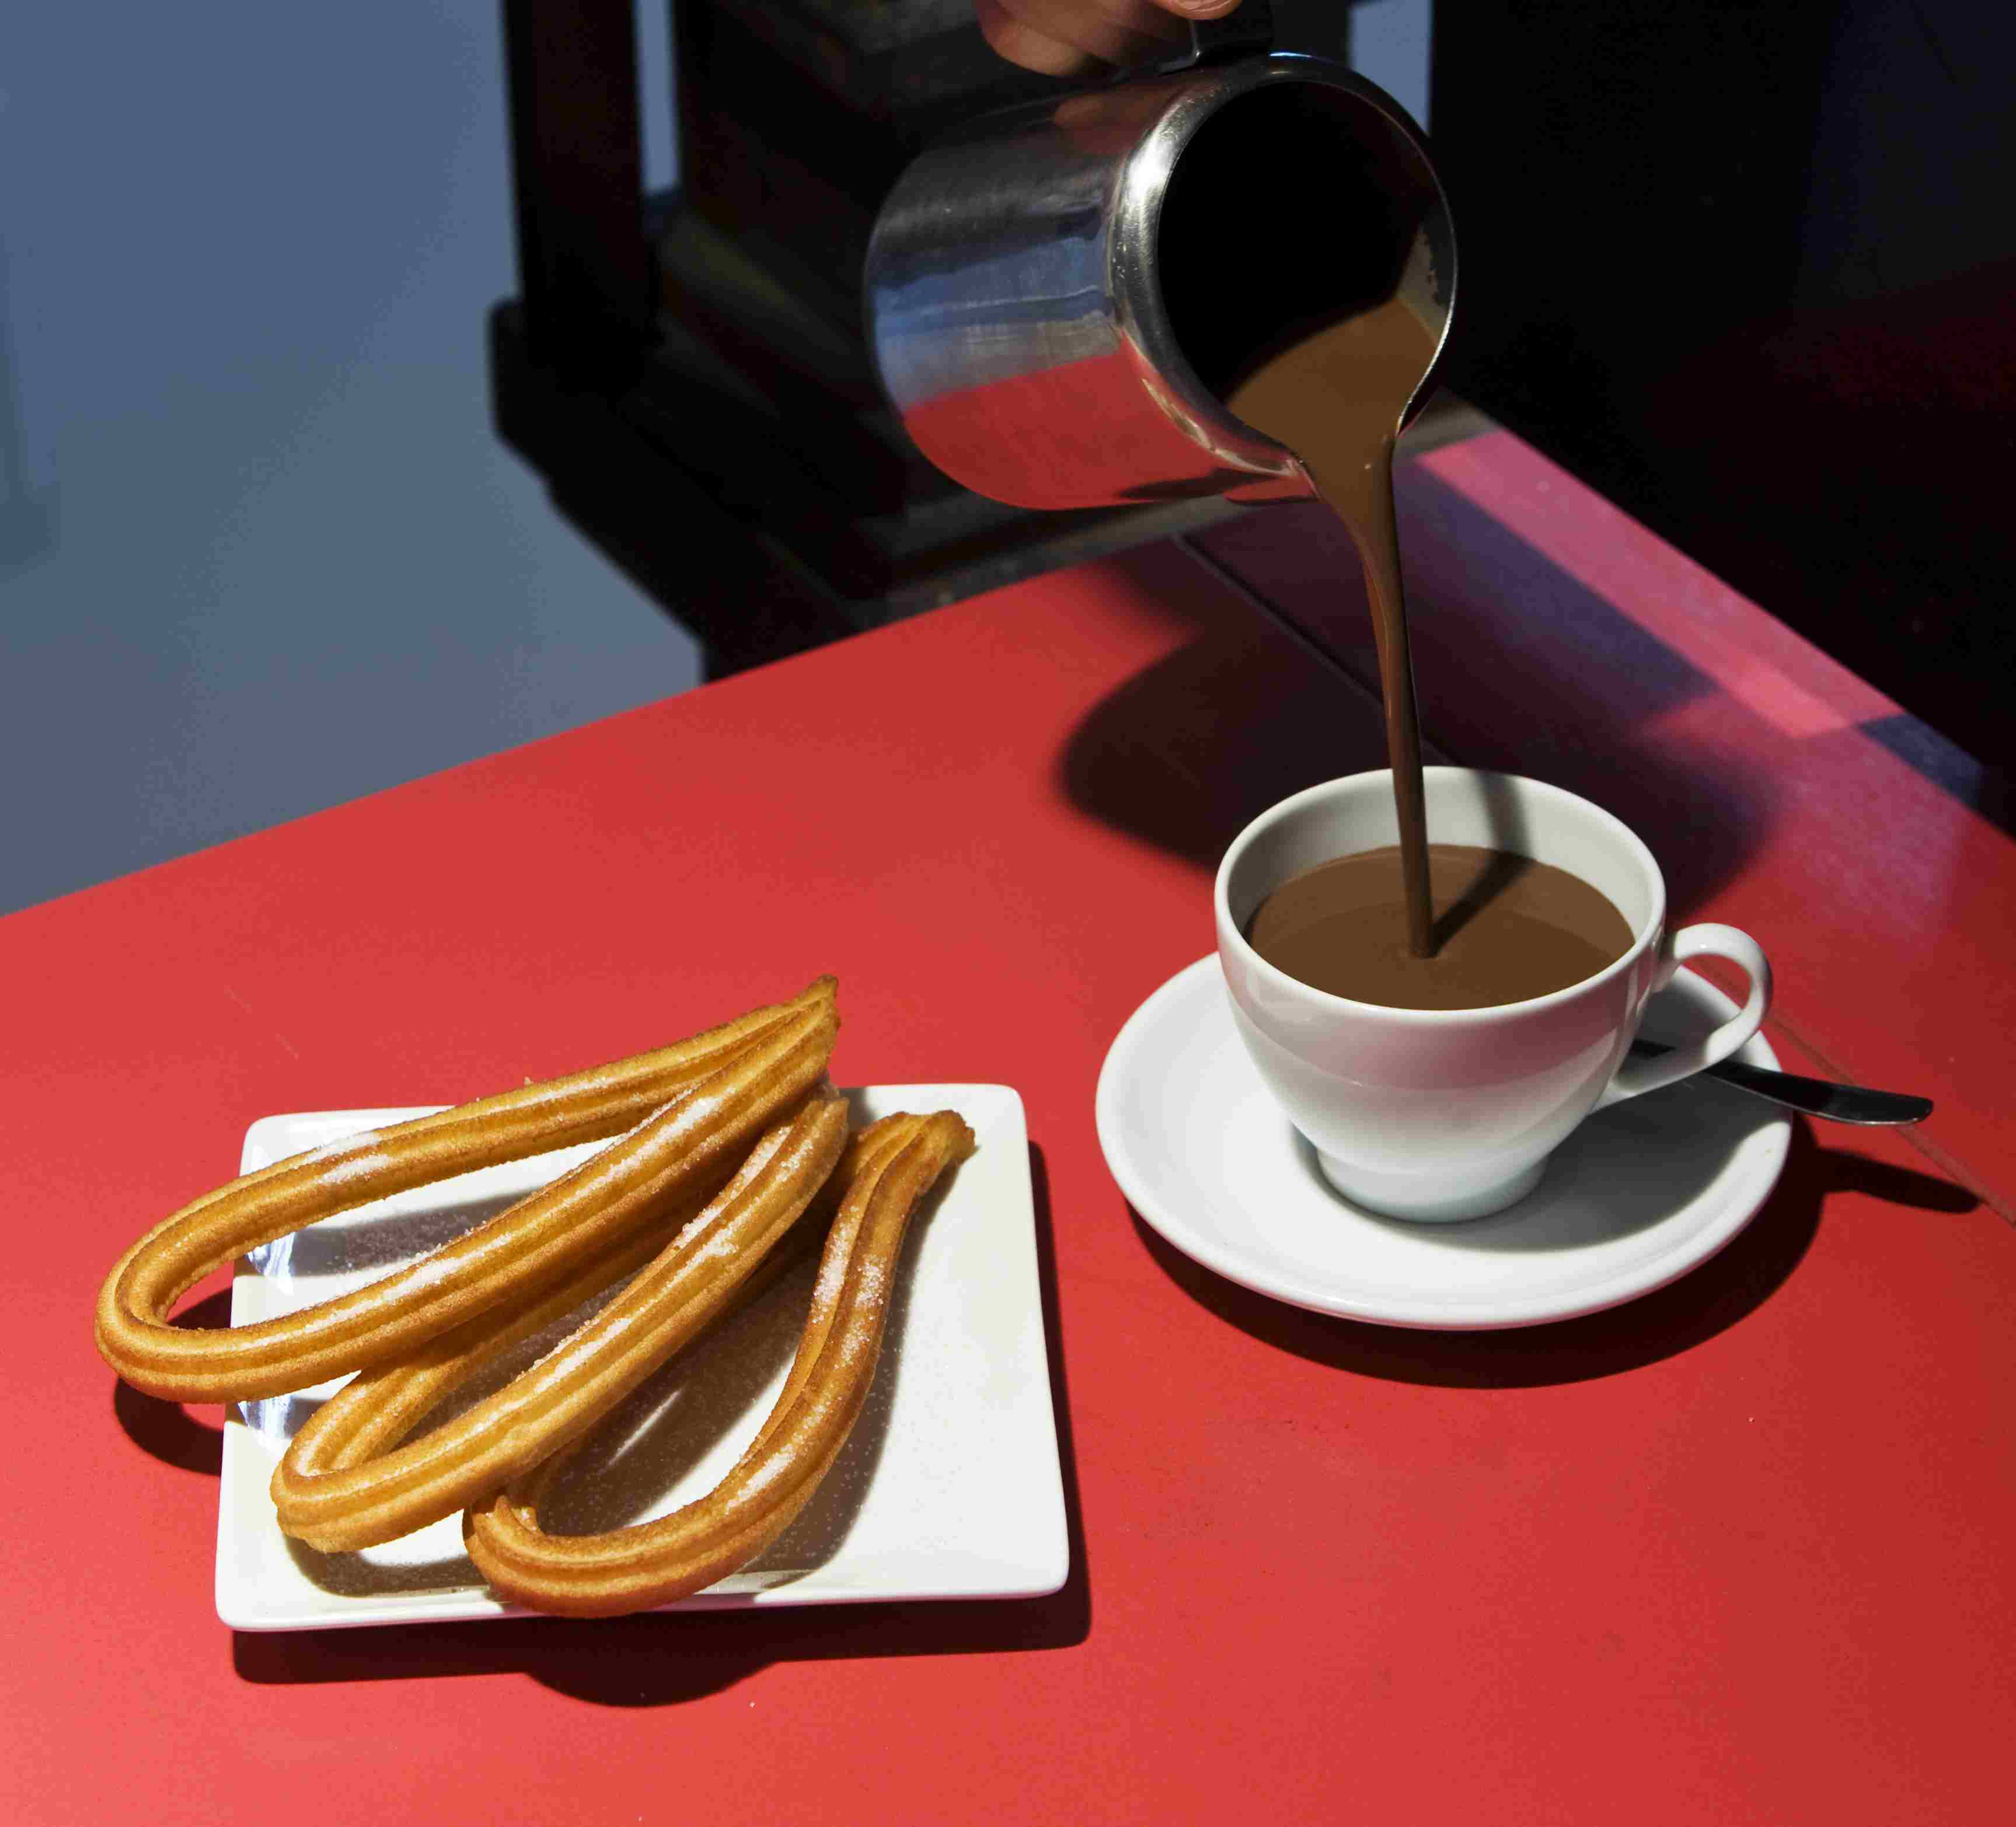 Chocolate con churros at the San Miguel Market.